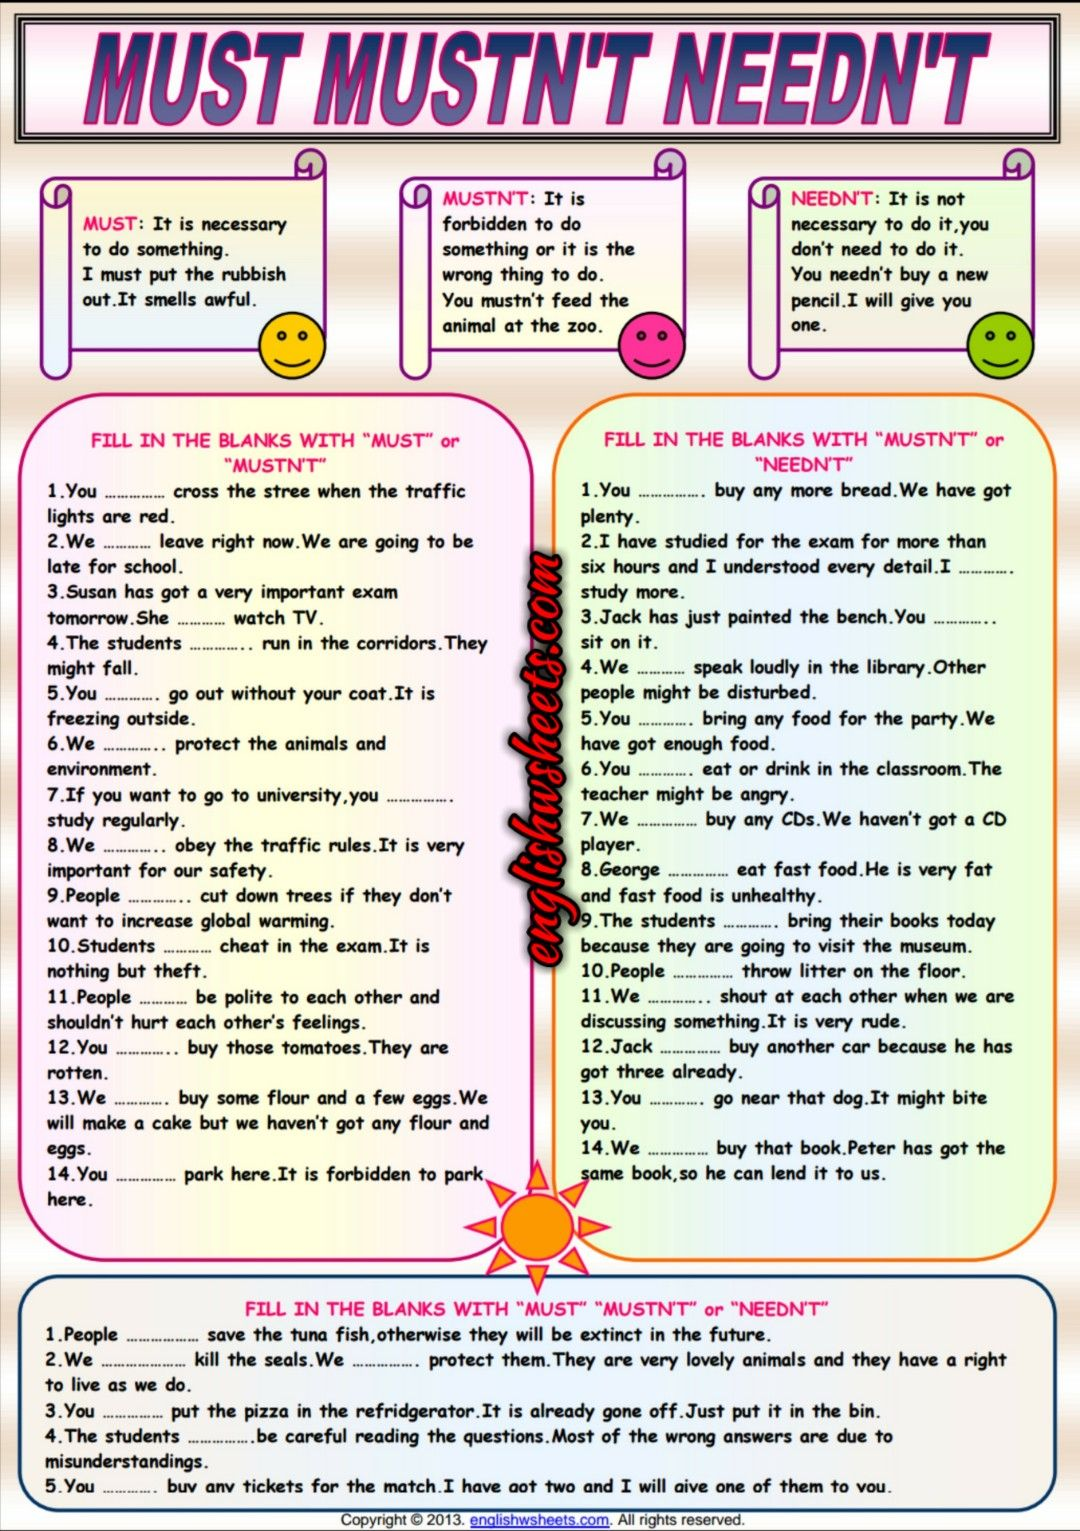 Auxiliary Verbs Must Mustn T Needn T Esl Worksheet